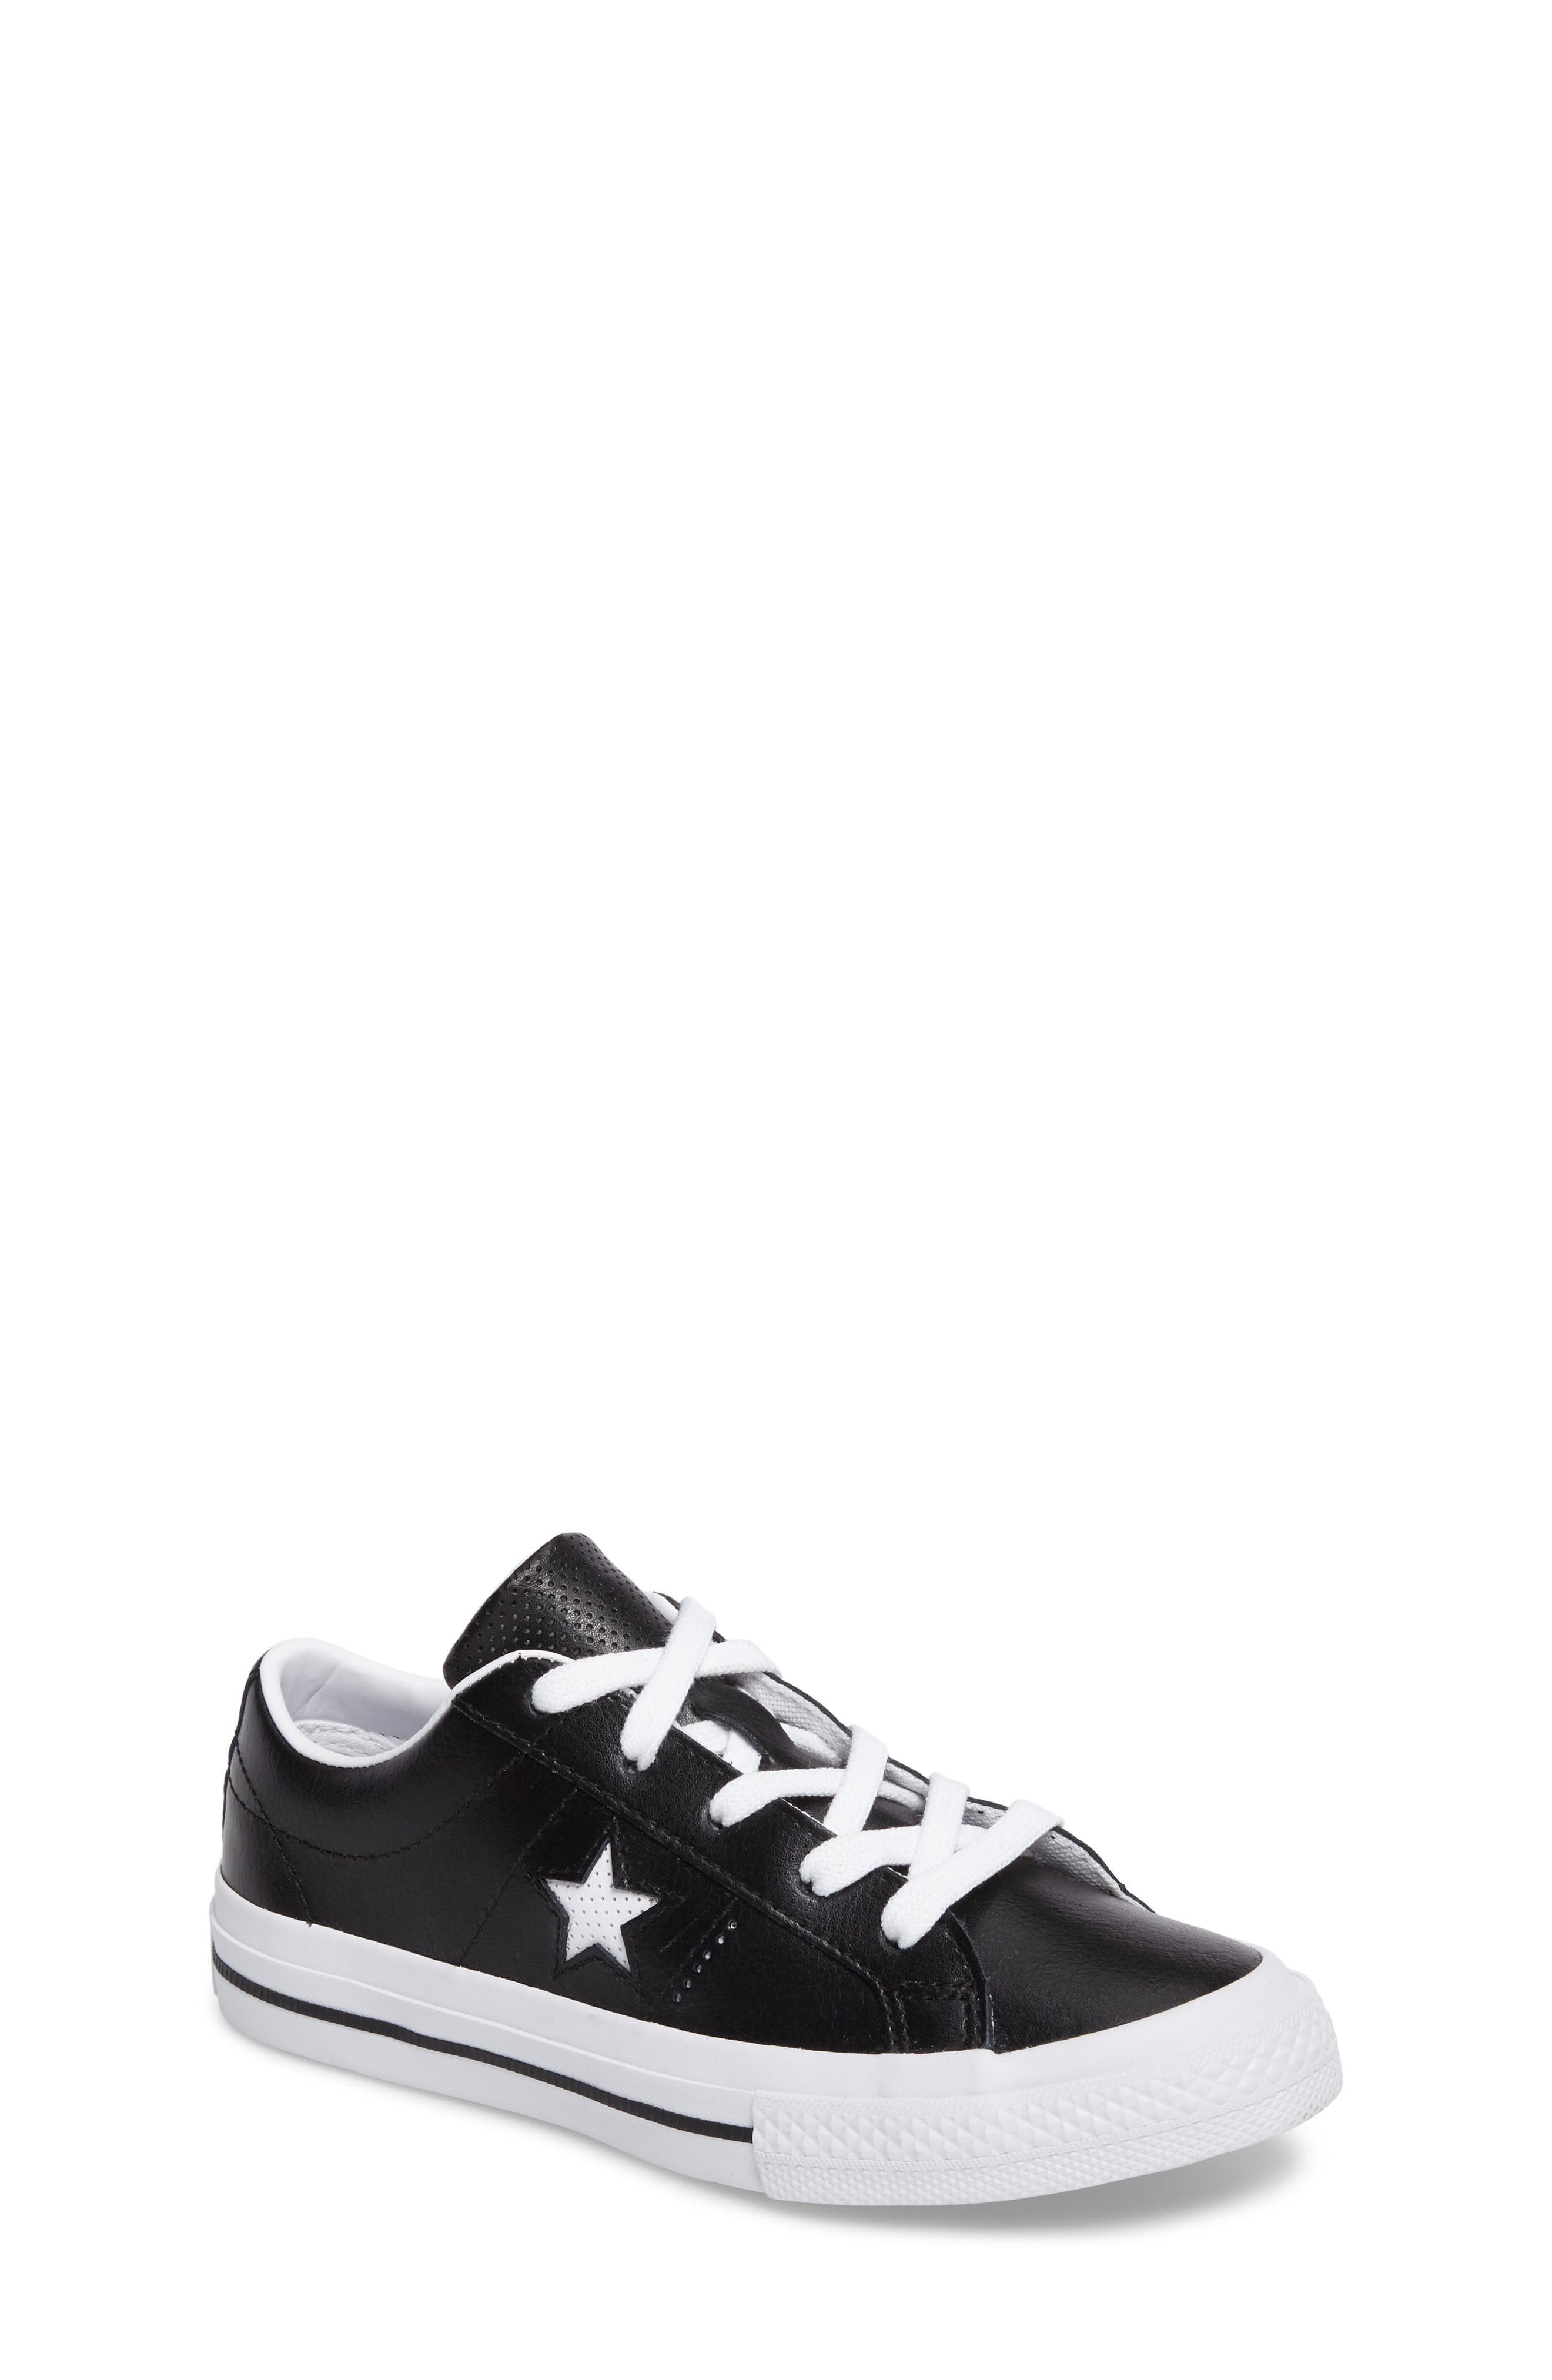 Converse Chuck Taylor® All Star® One Star Sneaker (Toddler, Little Kid & Big Kid)